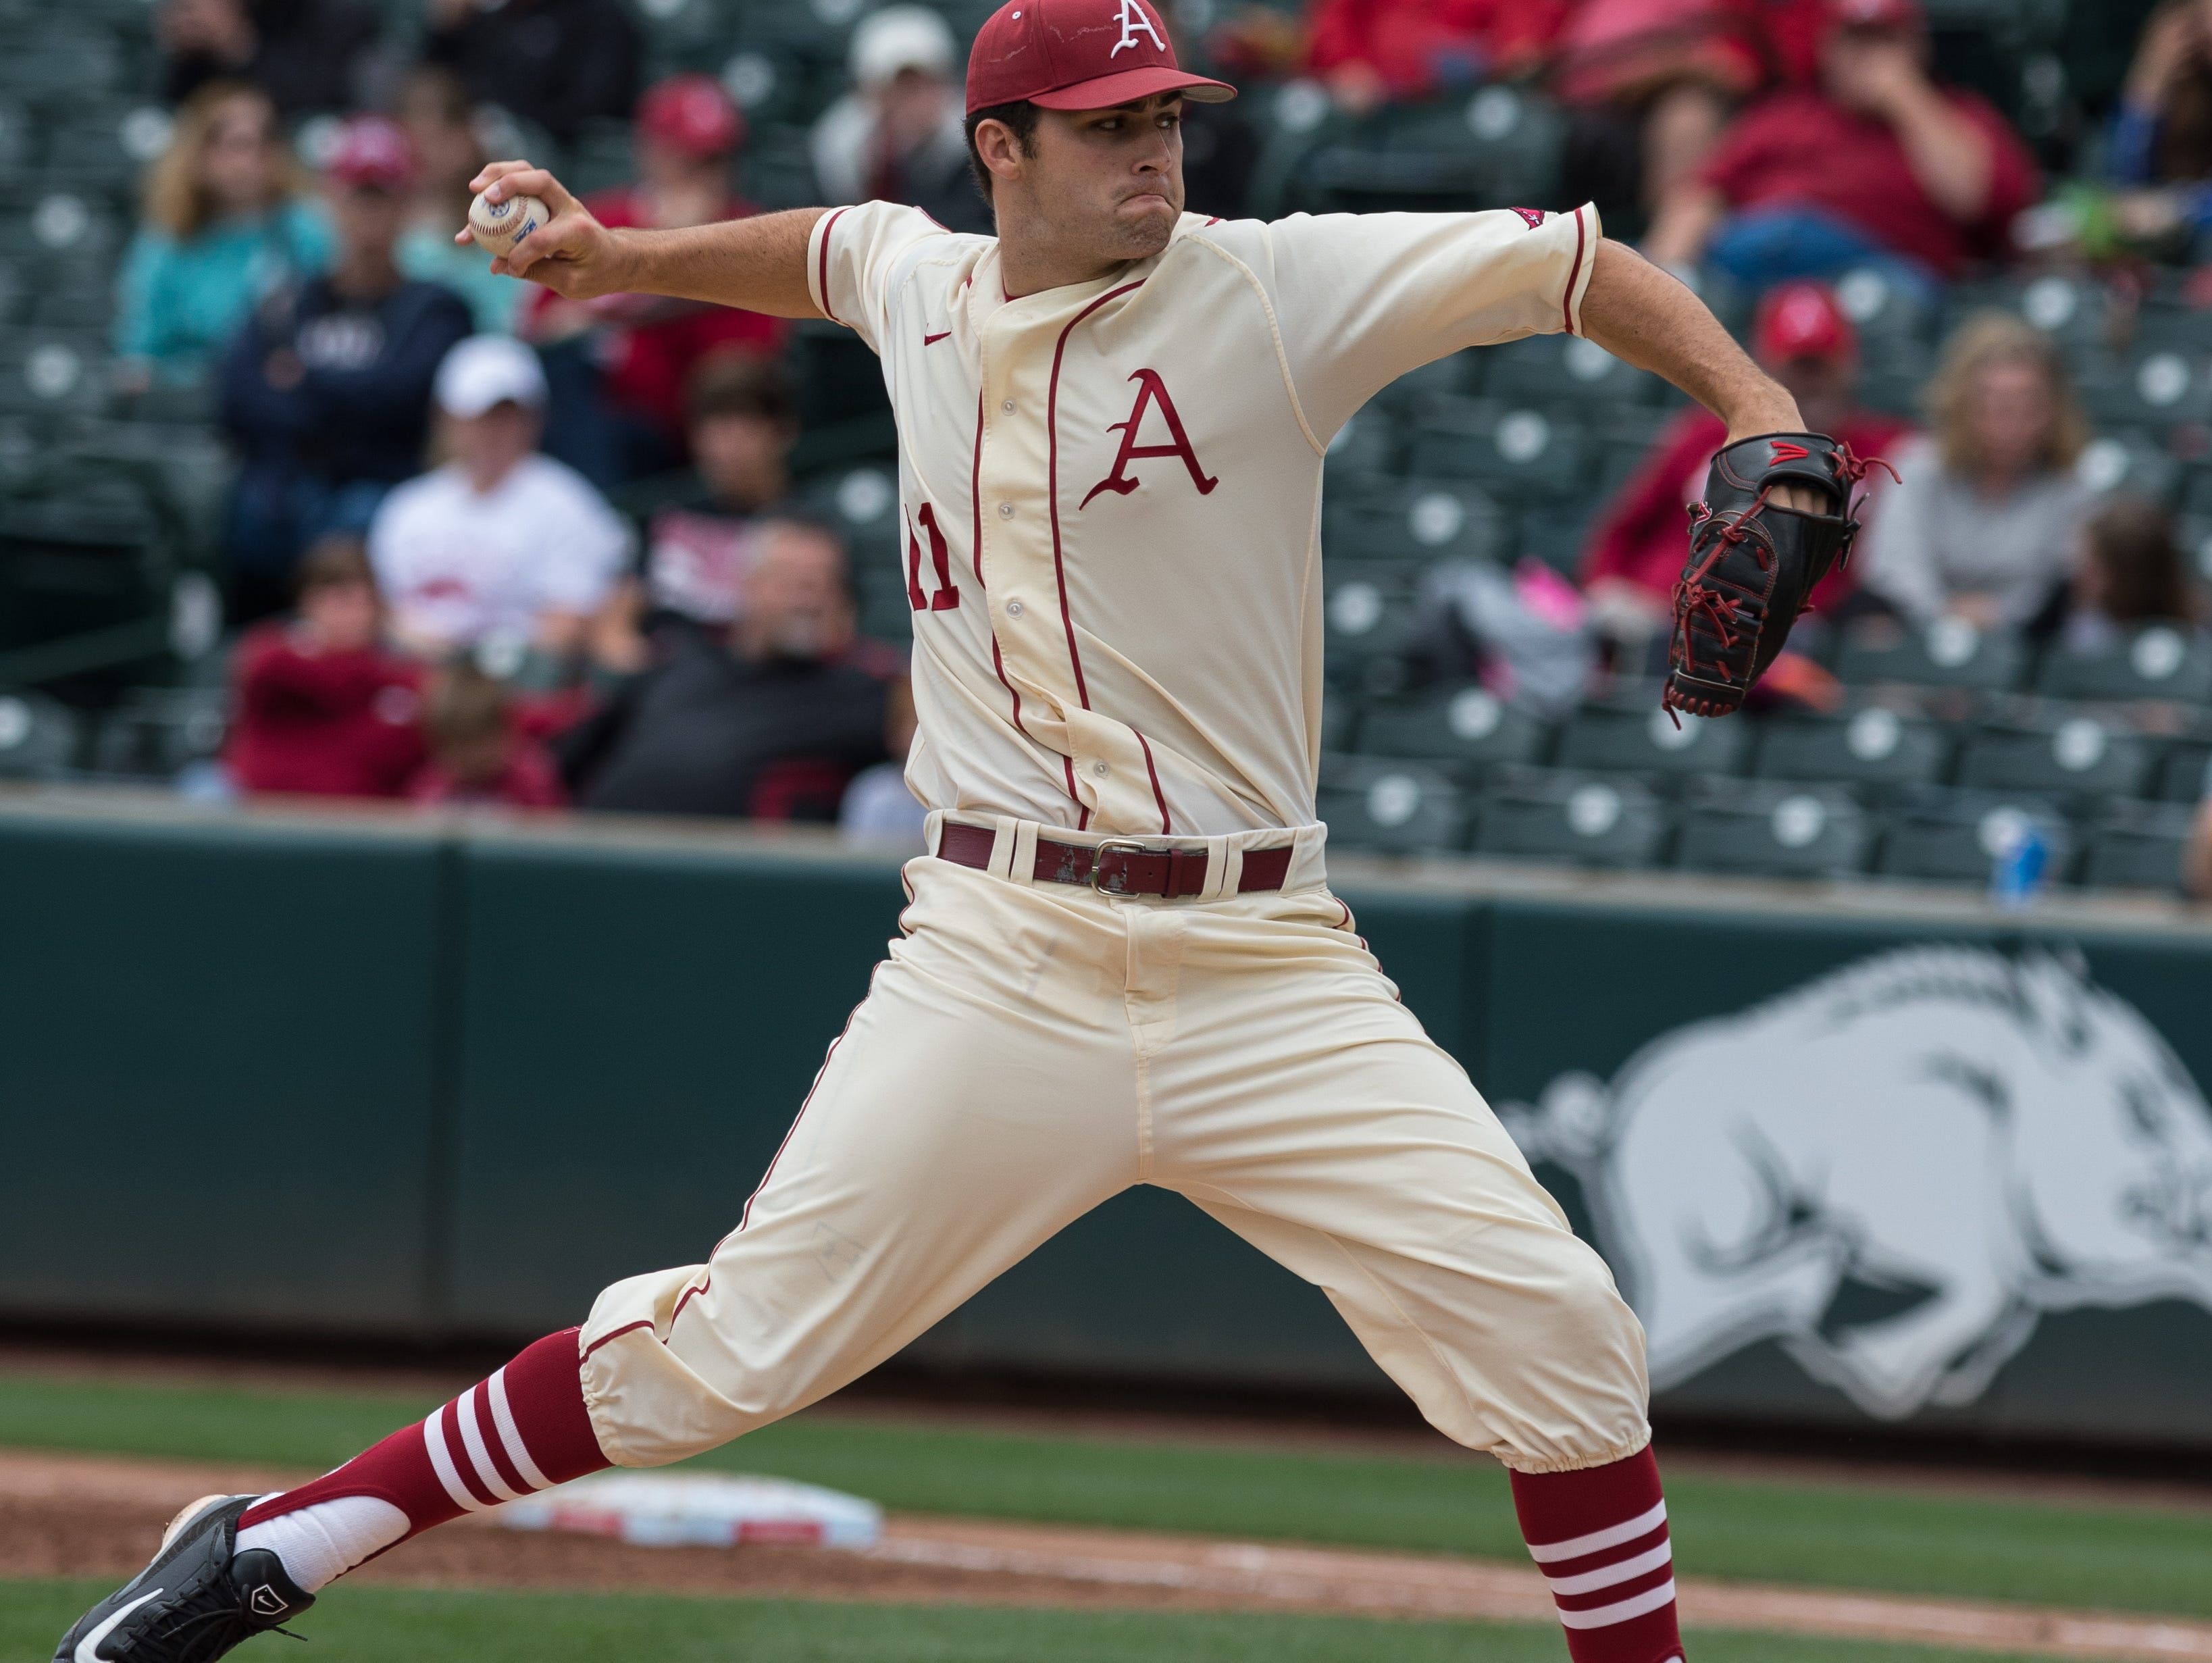 Arkansas pitcher Keaton McKinney delivers a pitch against Tennessee on Sunday at Baum Stadium in Fayetteville.